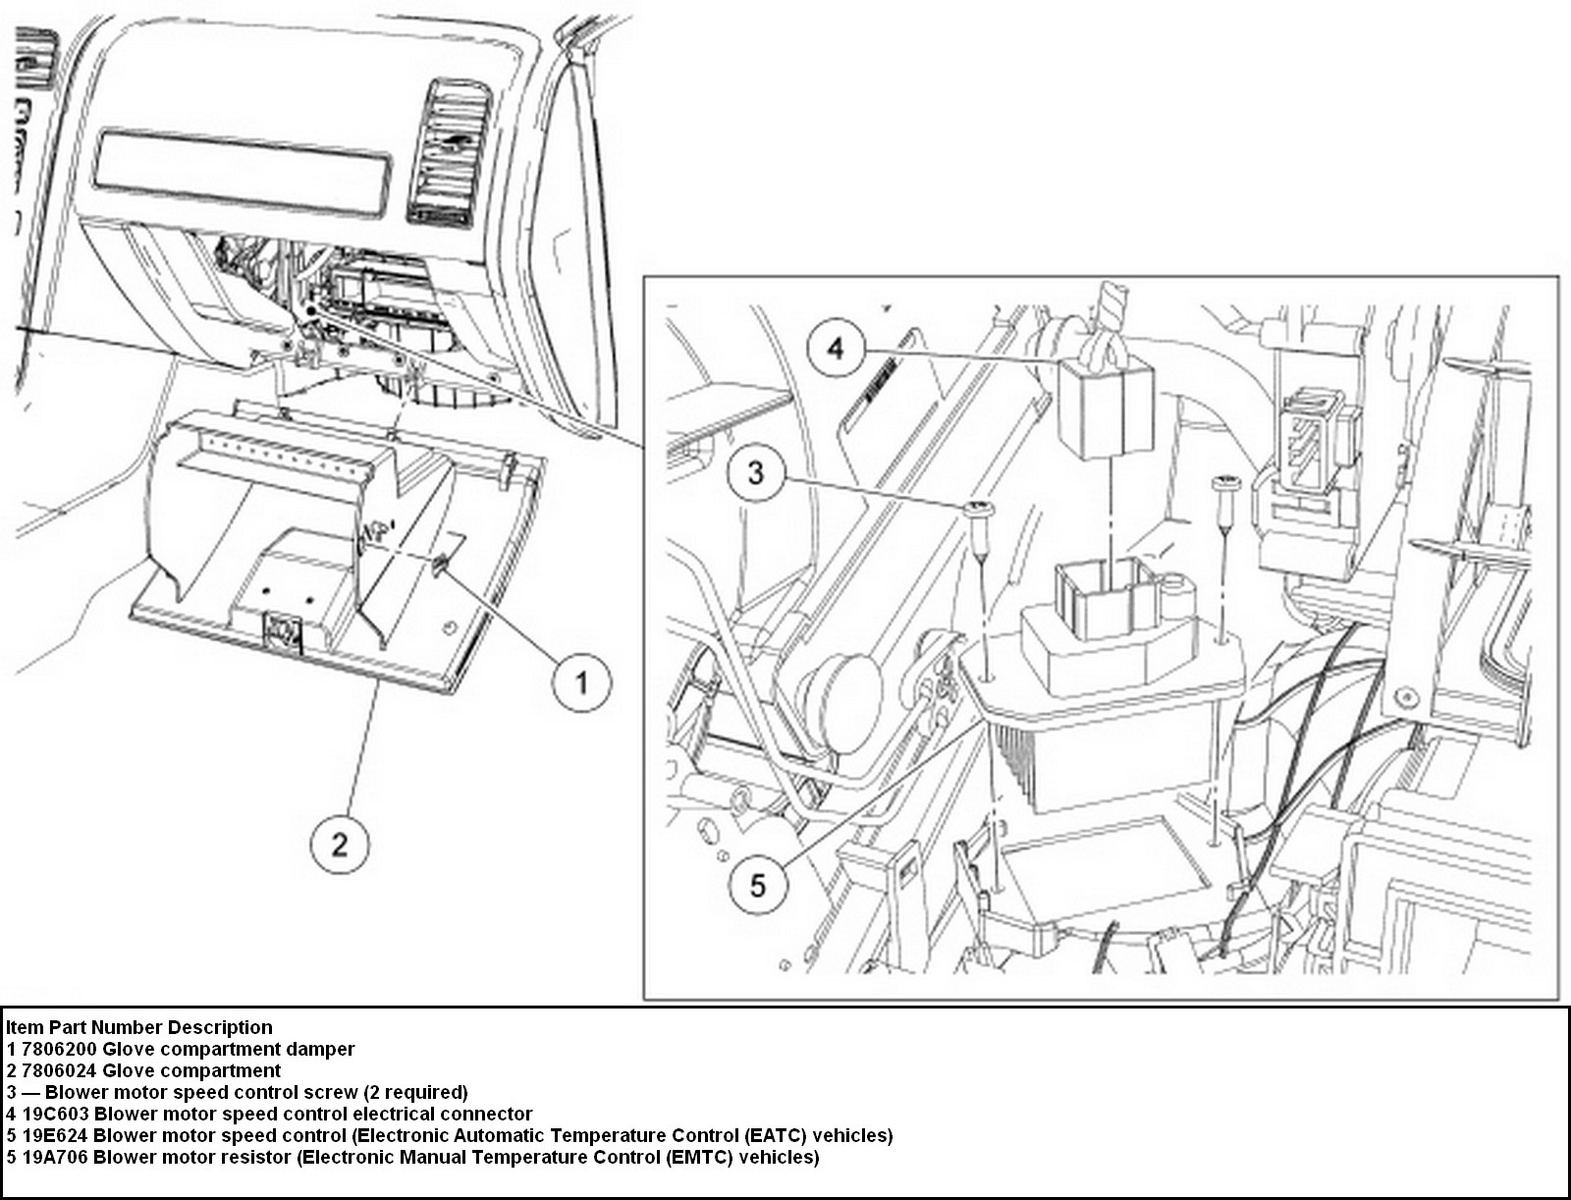 2009 Ford F550 Fuse Box Wiring Library 2006 Diagram Edge Questions How Do You Remove And Replace Install A Blower Rh Cargurus Com